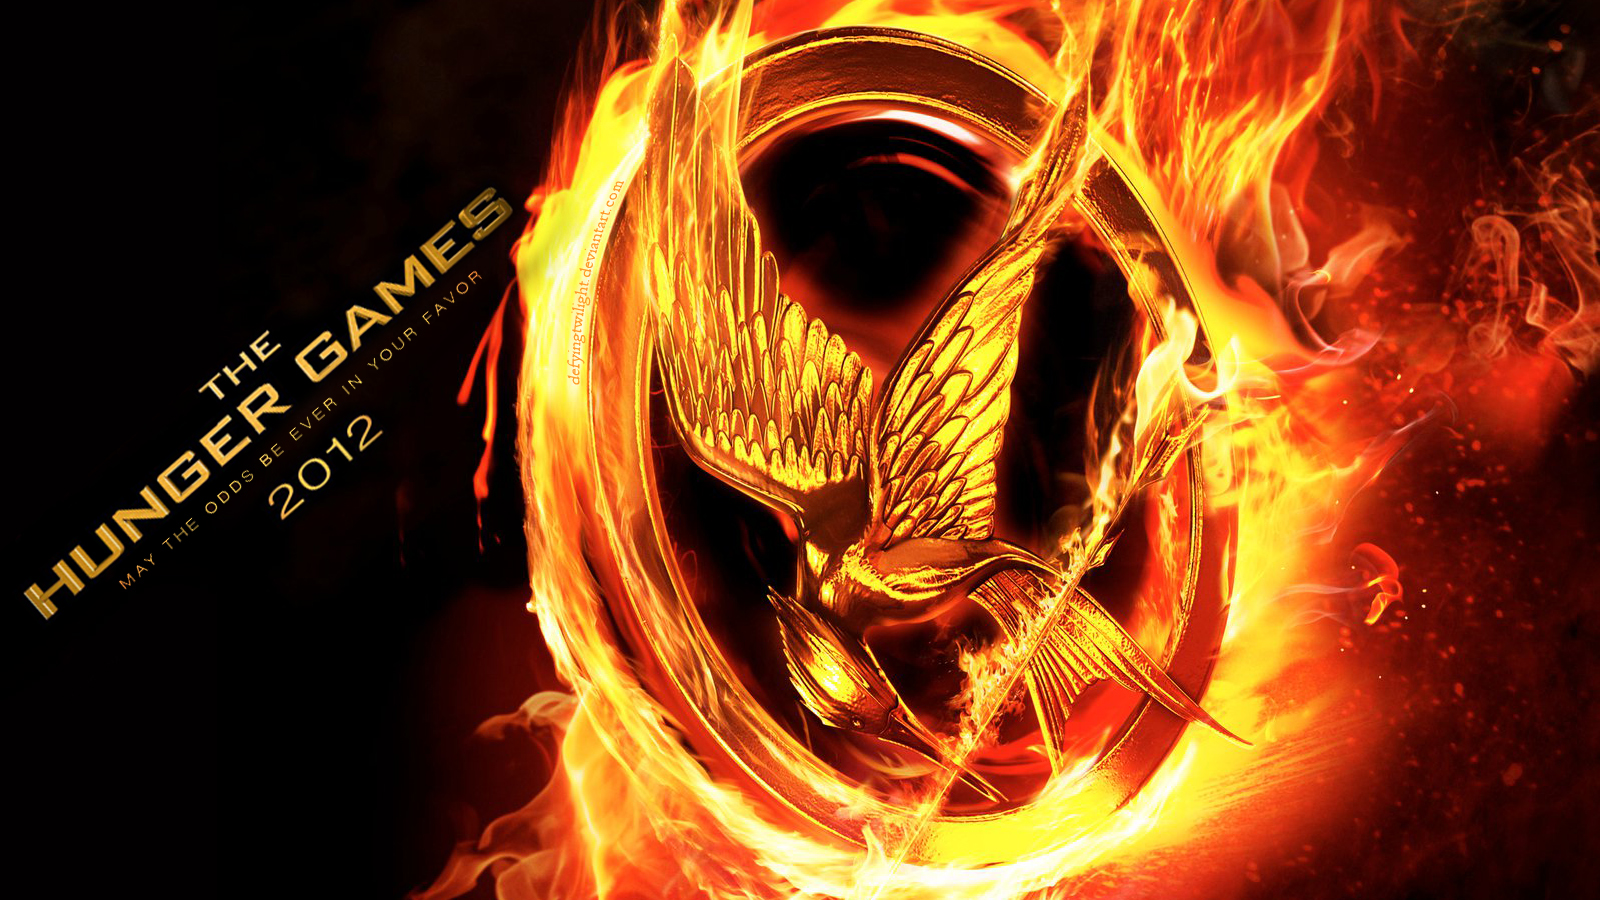 The Hunger Games Movie Poster Wallpapers   The Hunger 1600x900